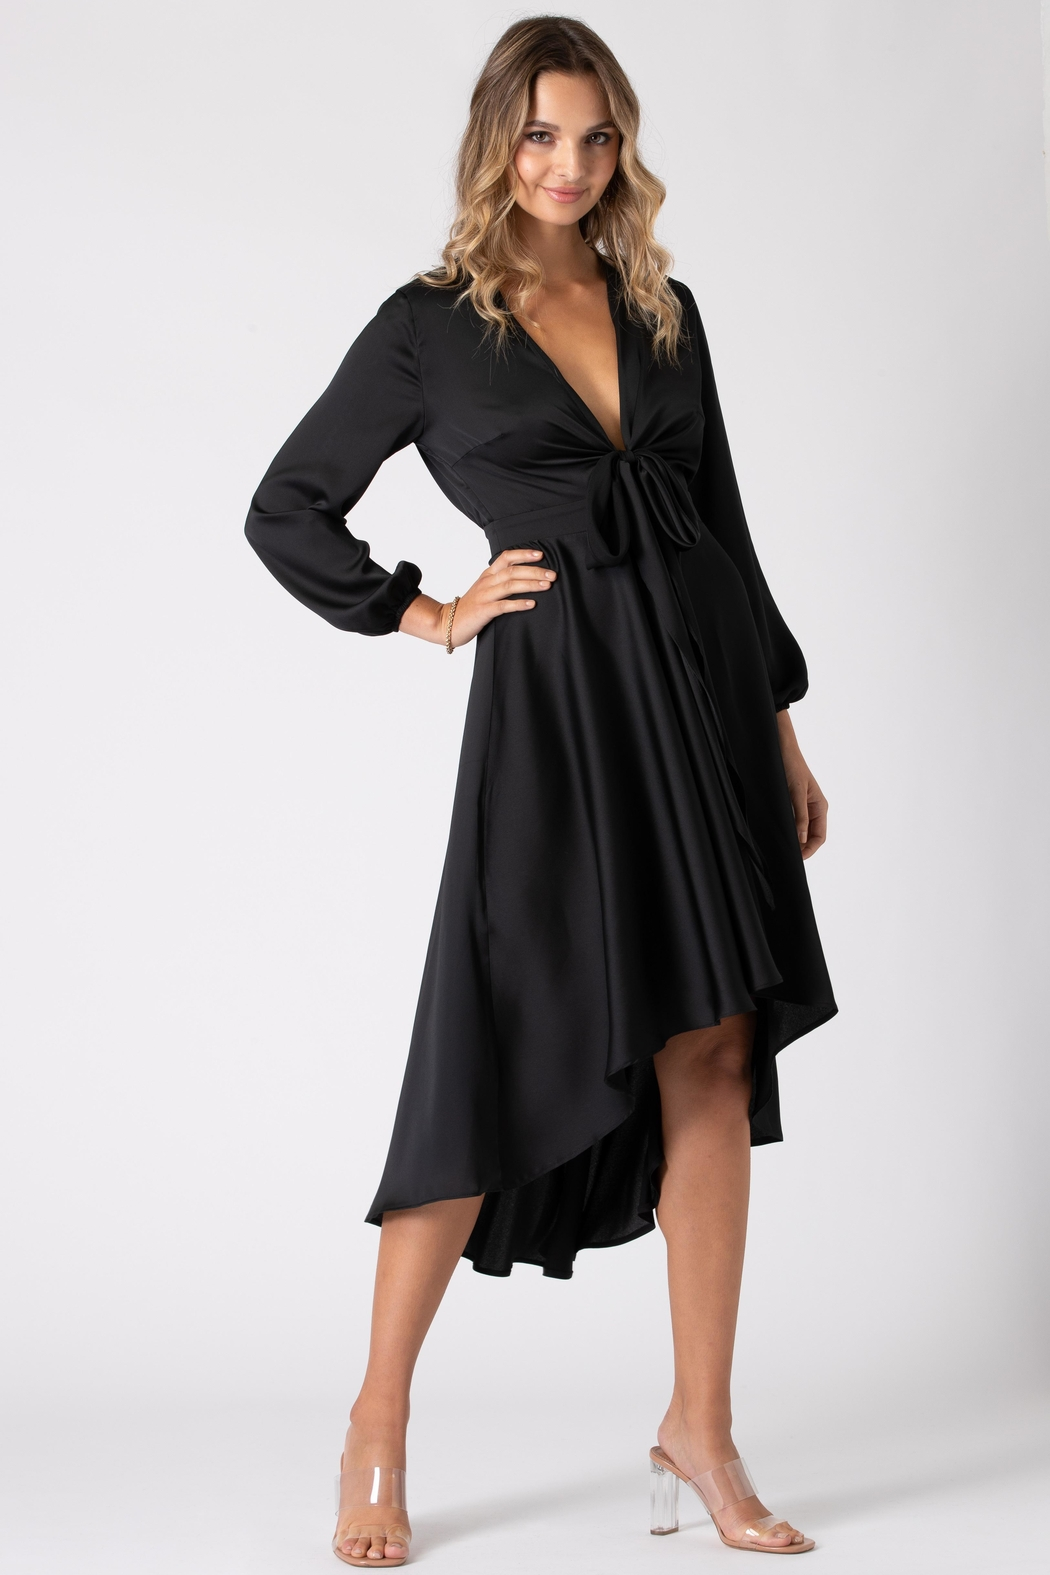 Urban Touch Black Dip Hem Wrap Front Dress With Long Sleeves - Main Image